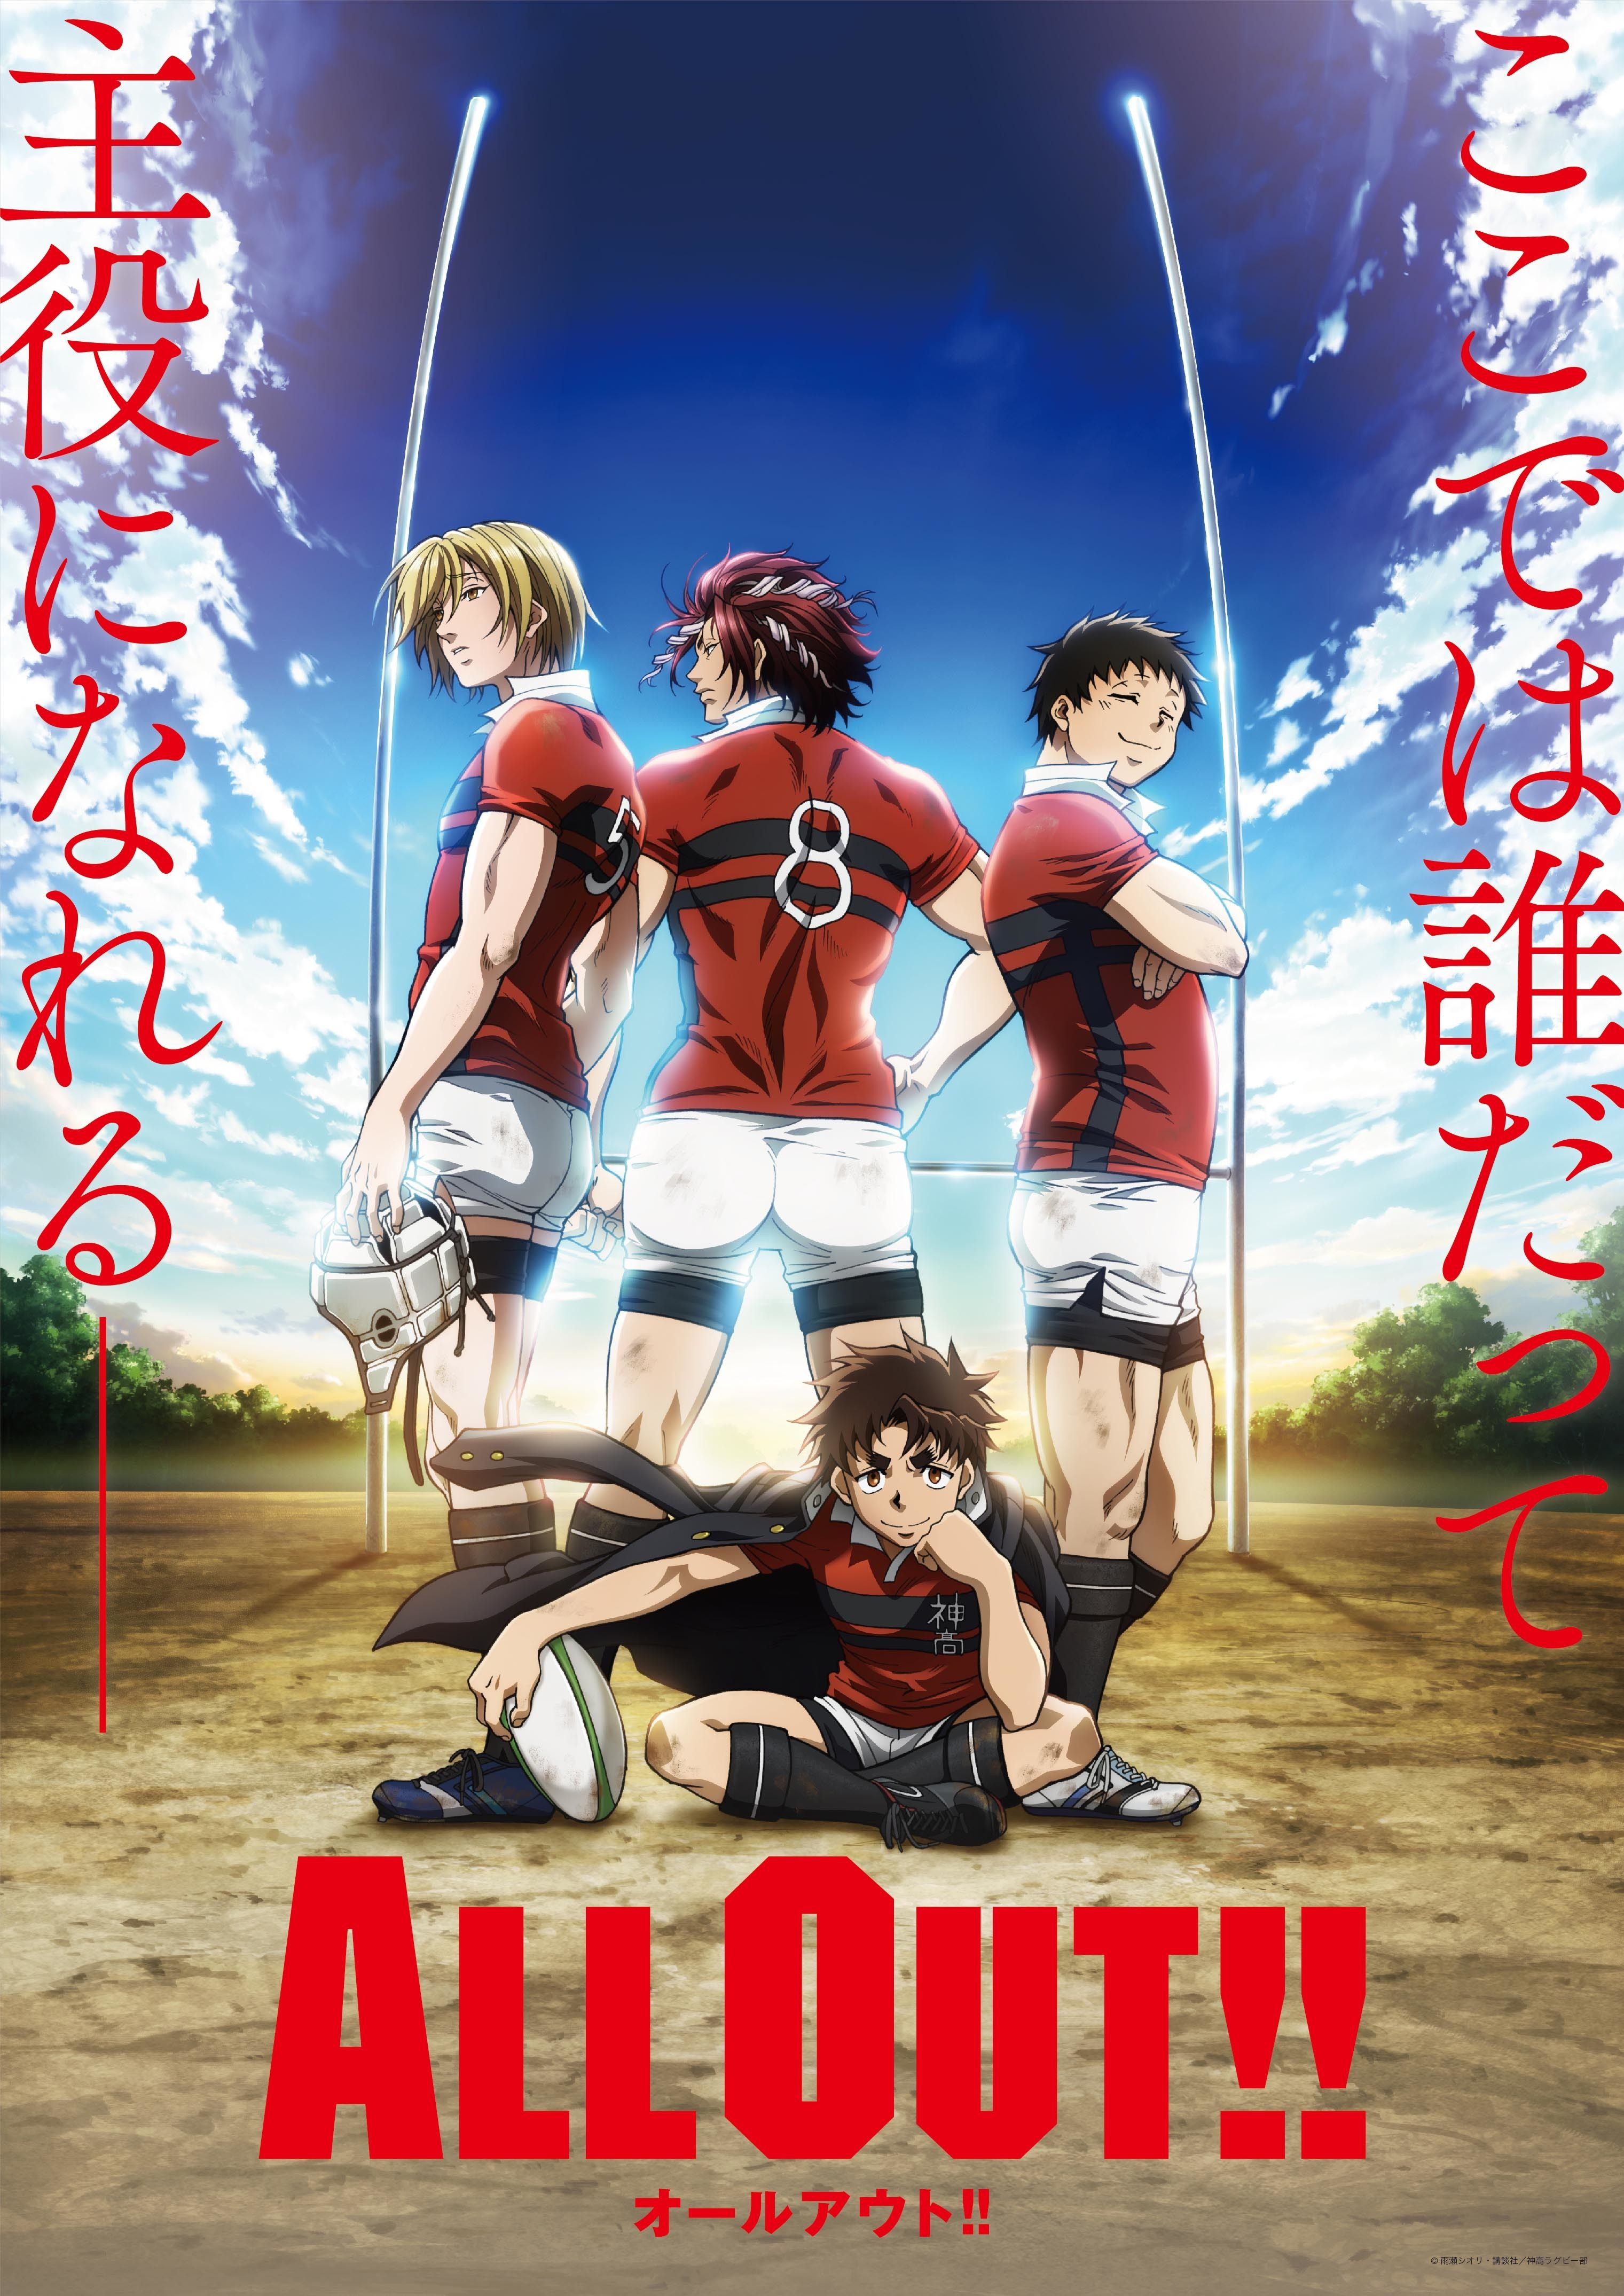 All Out!! 01 25 Rugby poster, Anime, Zelda characters